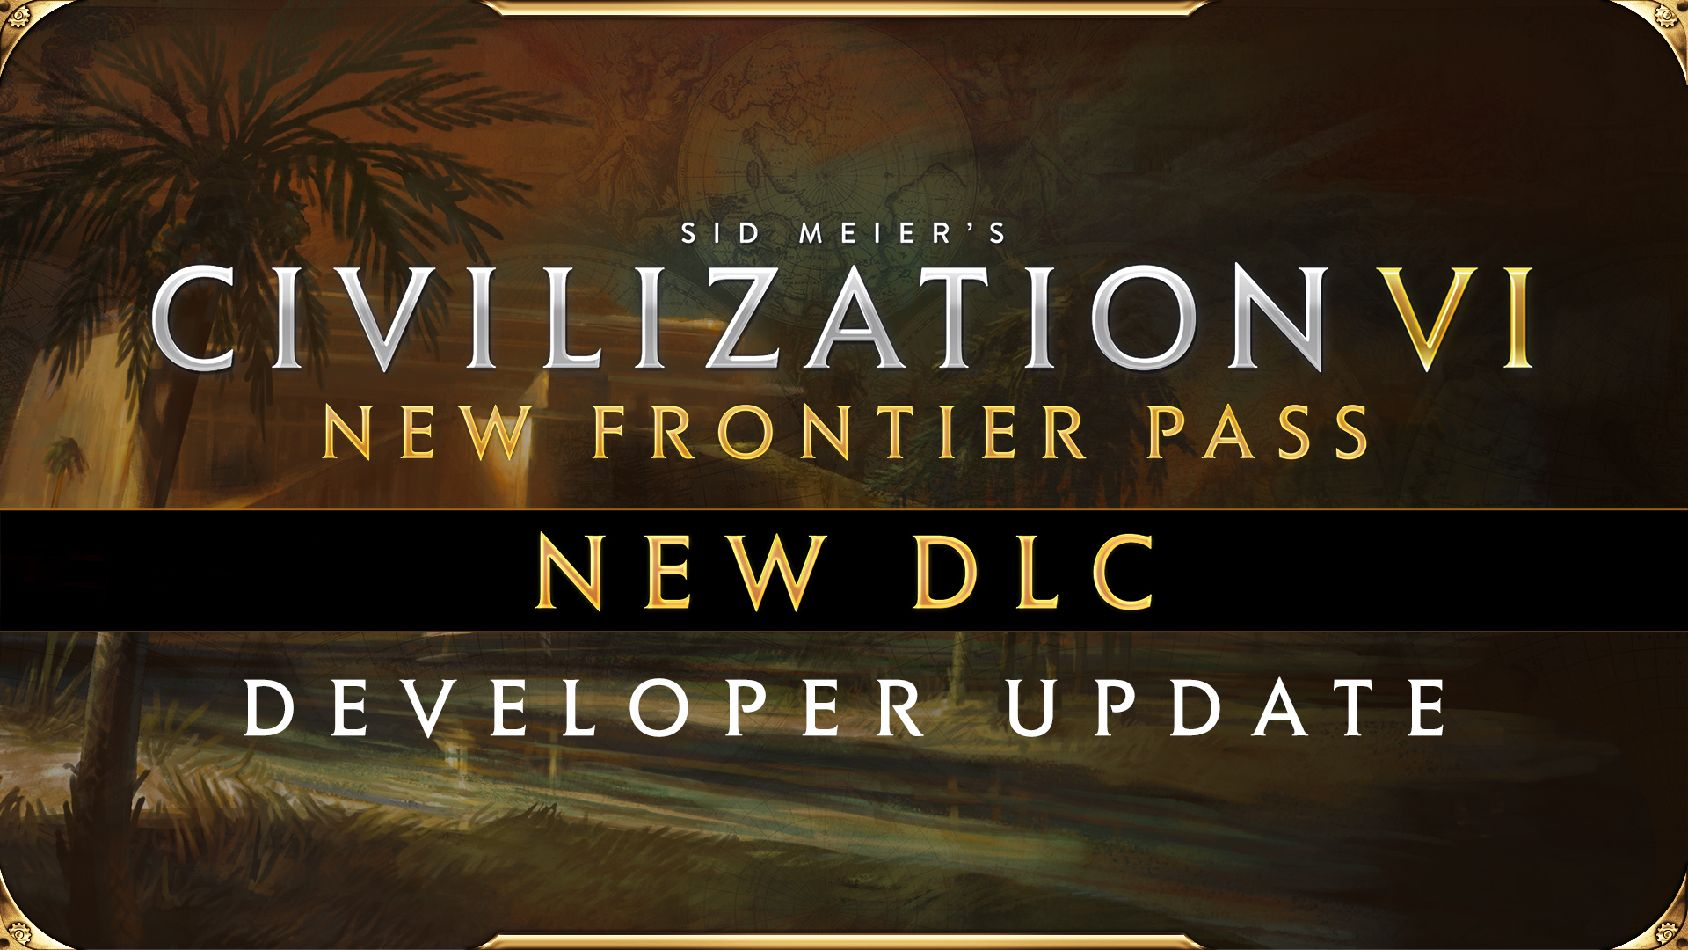 Civilization VI - New Frontier Pass - DLC Hammurabi of Babylon Pack 4 Dev Update logo